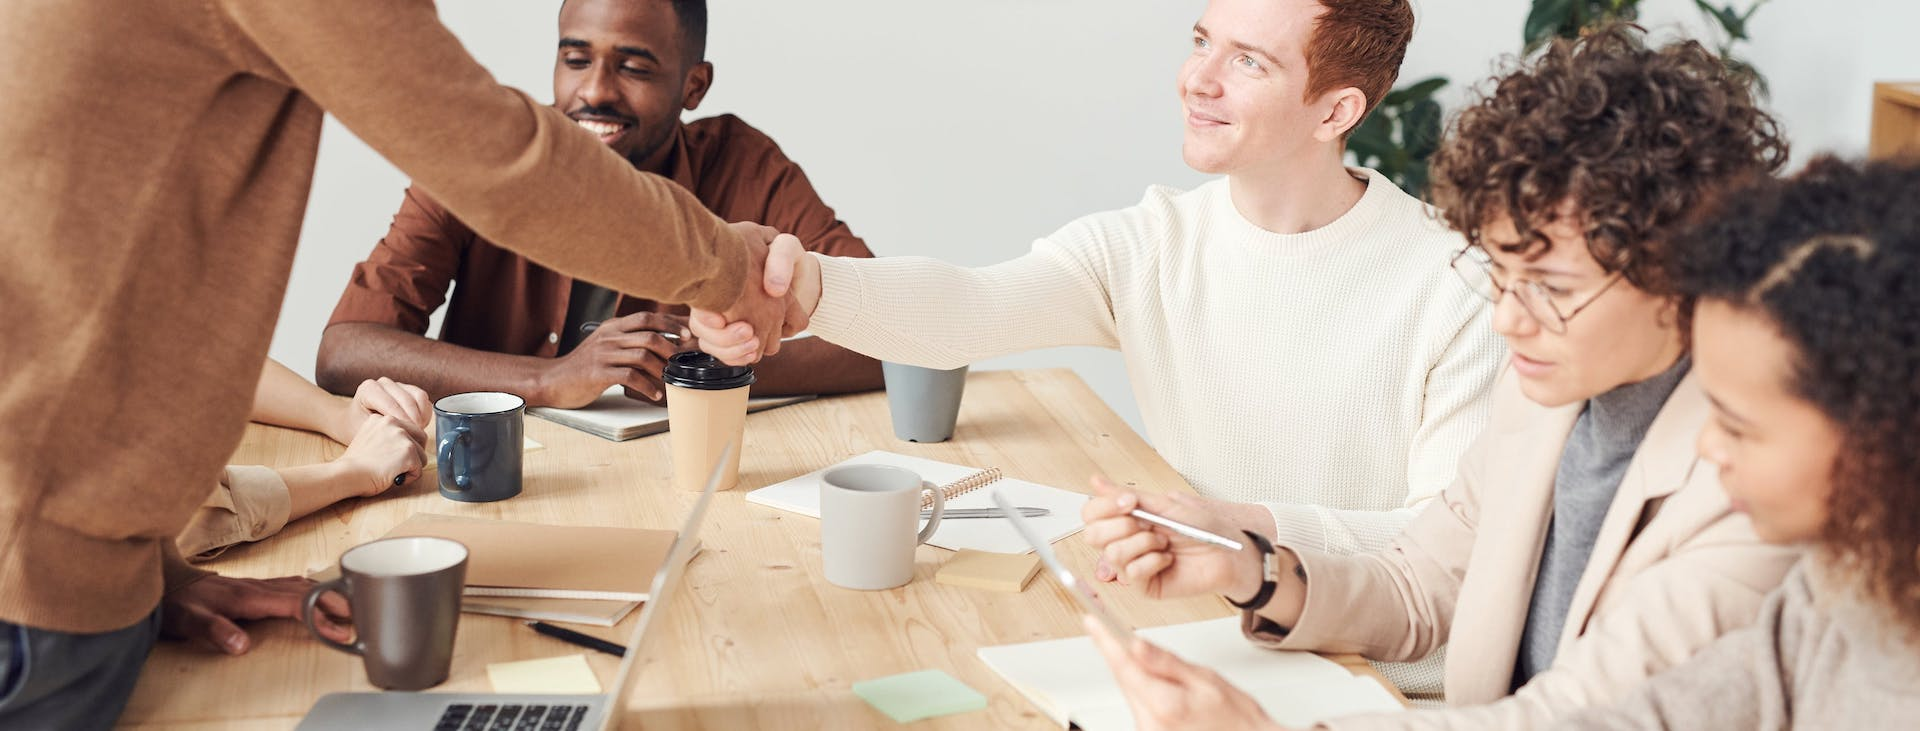 Group of five working together at table with two shaking hands